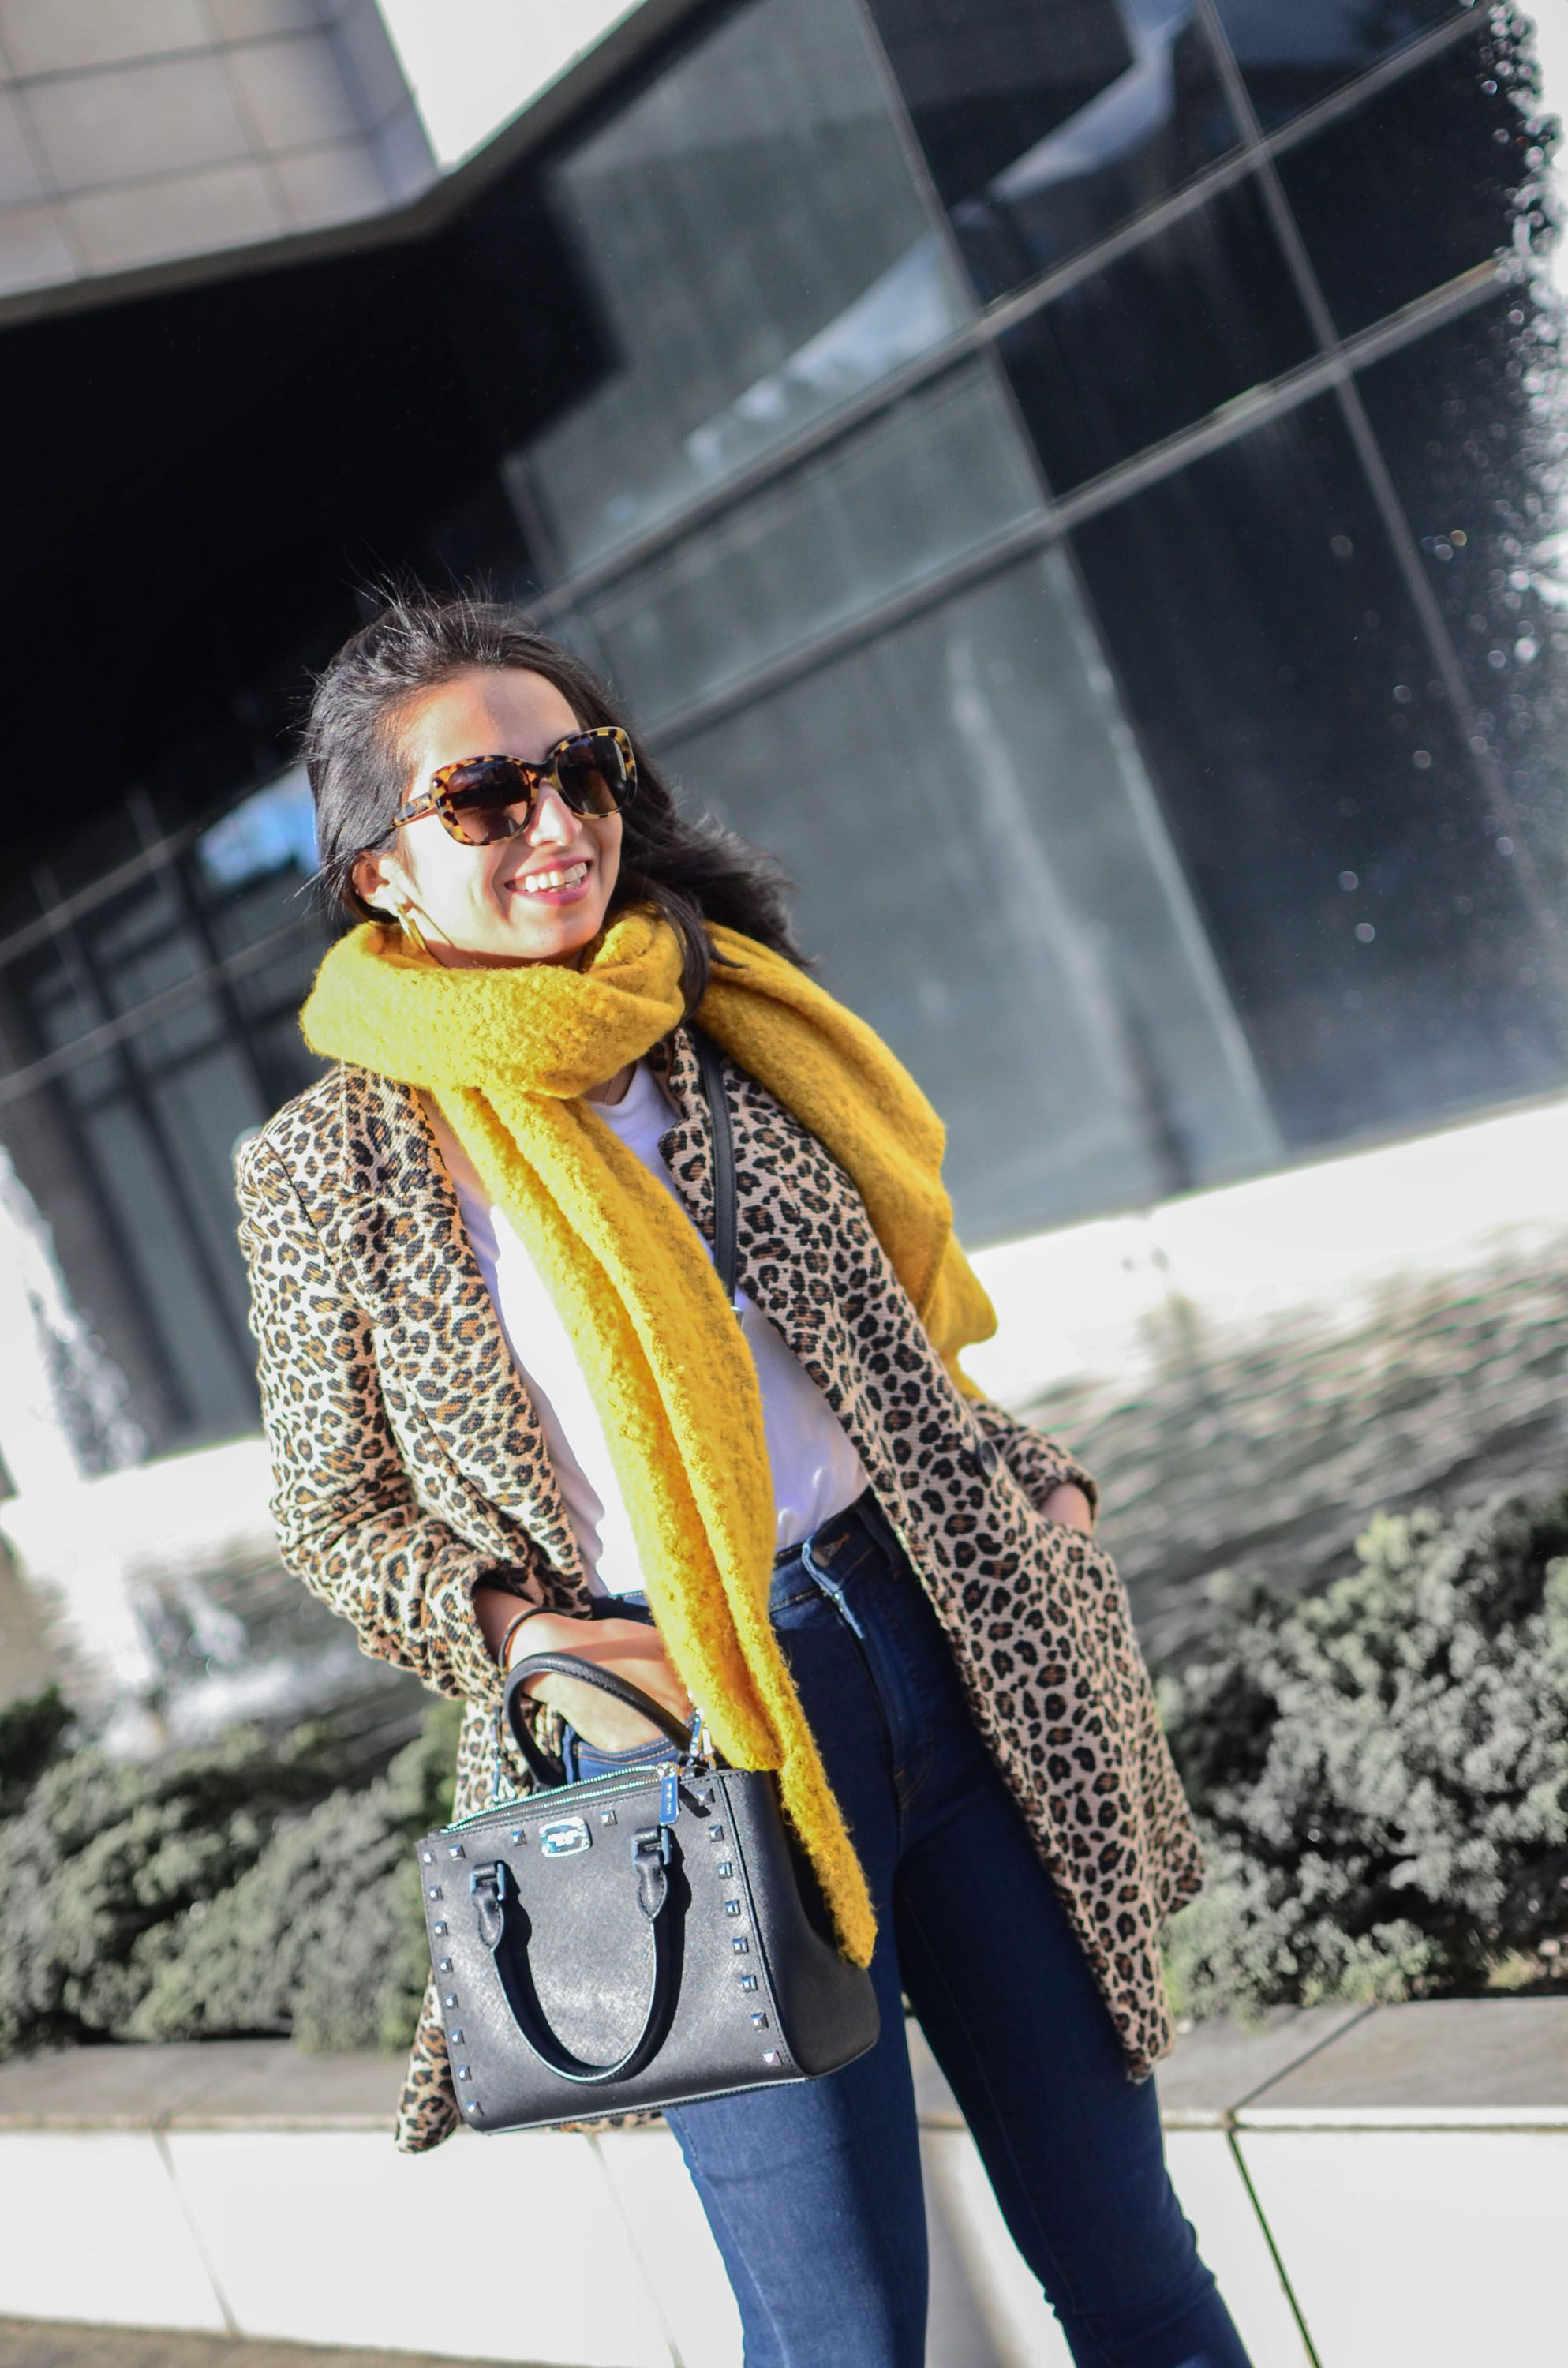 Run Errands In Style All You Need Is A Leopard Coat Cur Situation Running Looking Good Without Toooo Much Effort